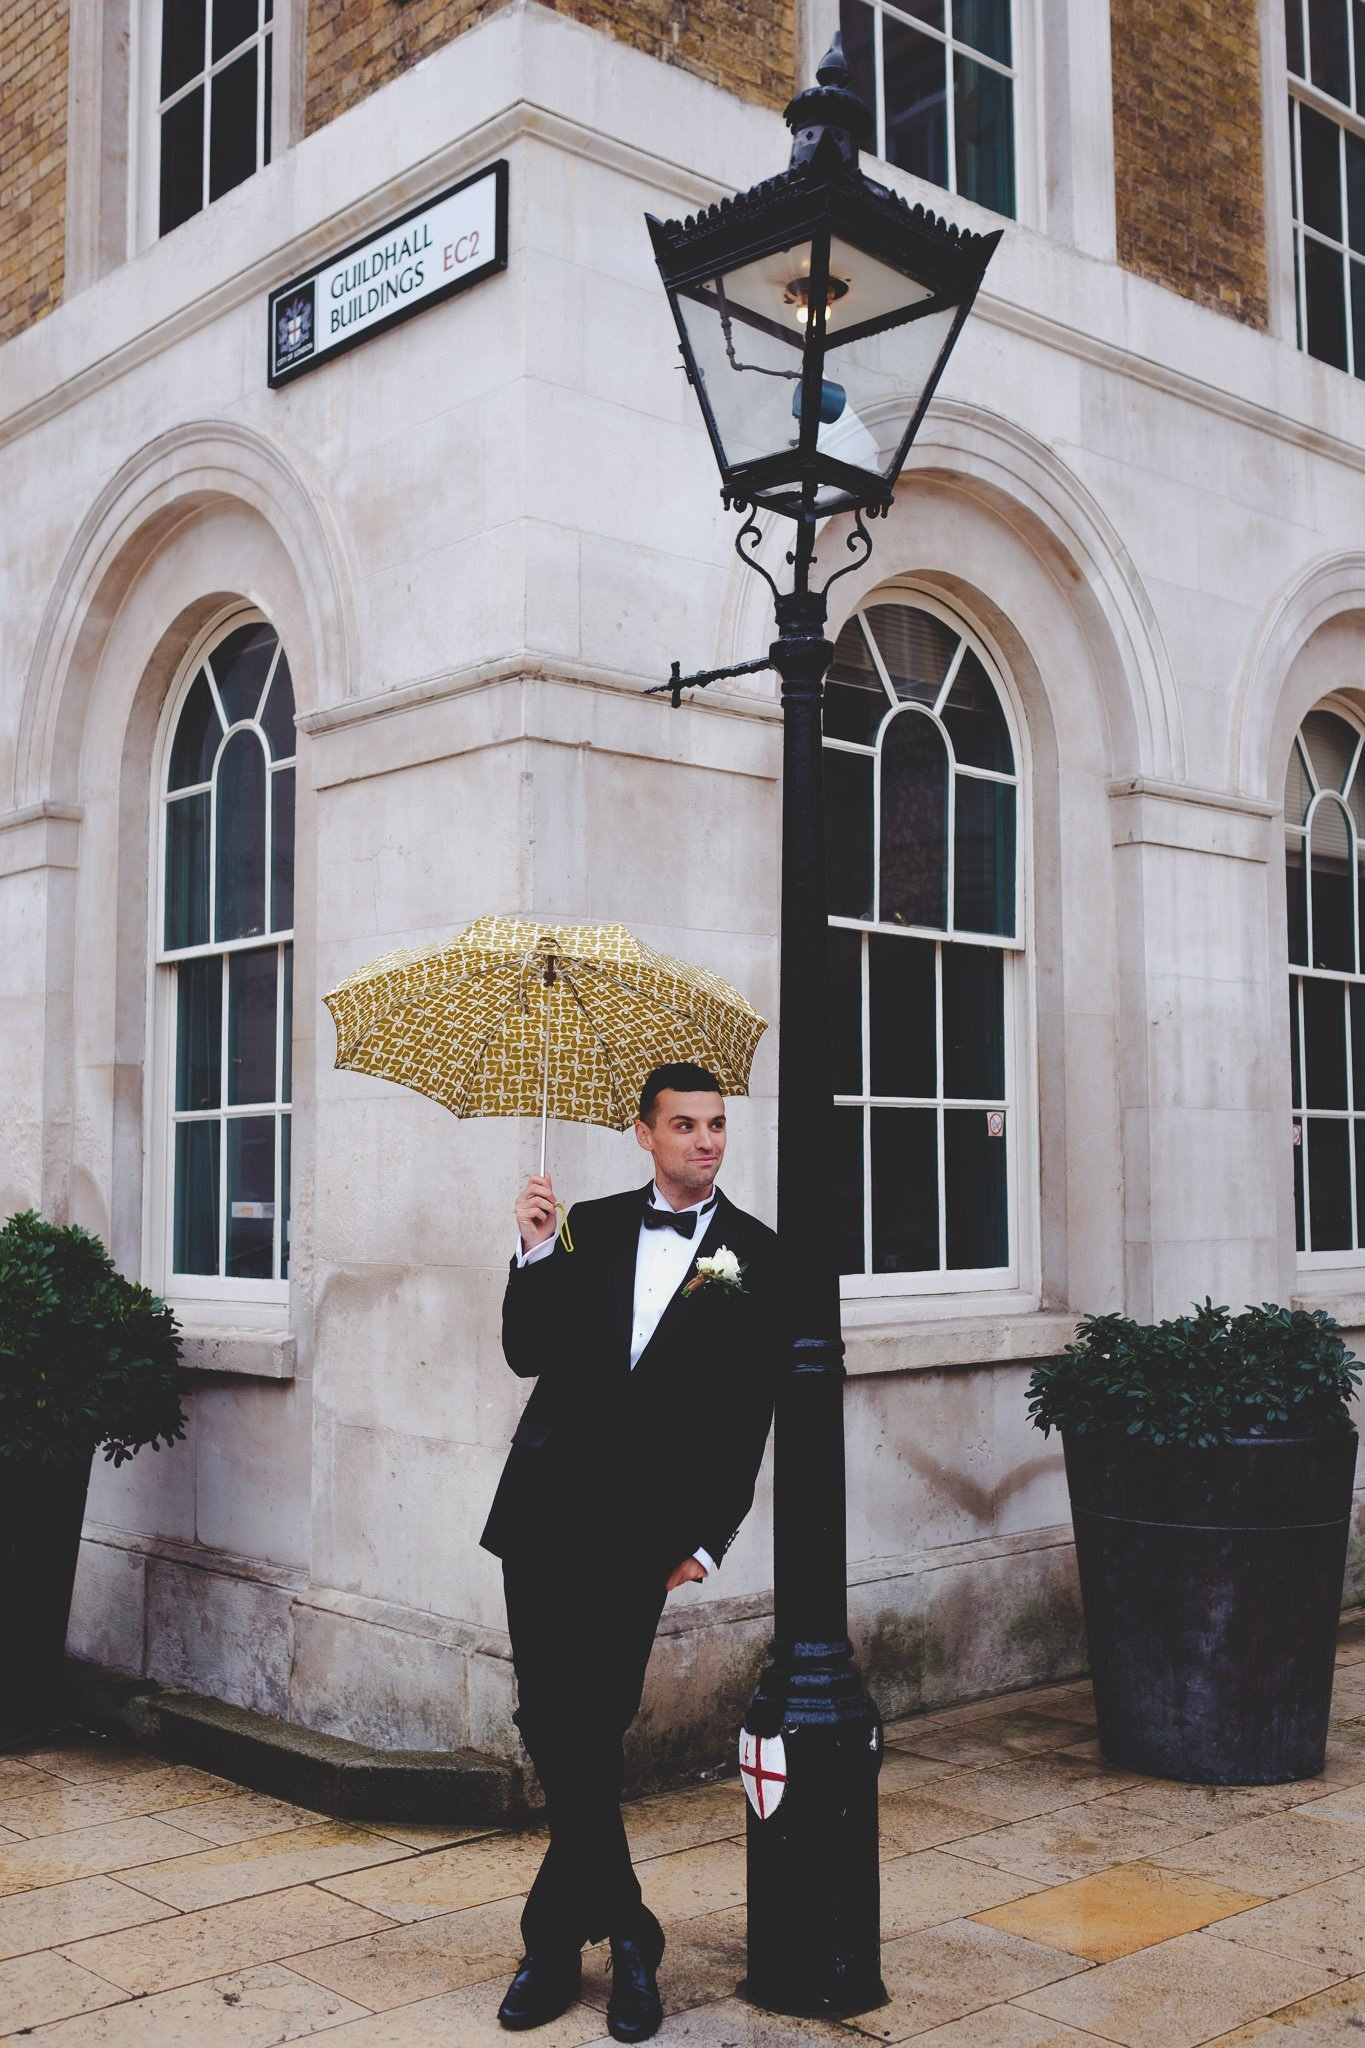 Tuxedoed groom standing against a lamppost holding an umbrella in Guildhall London